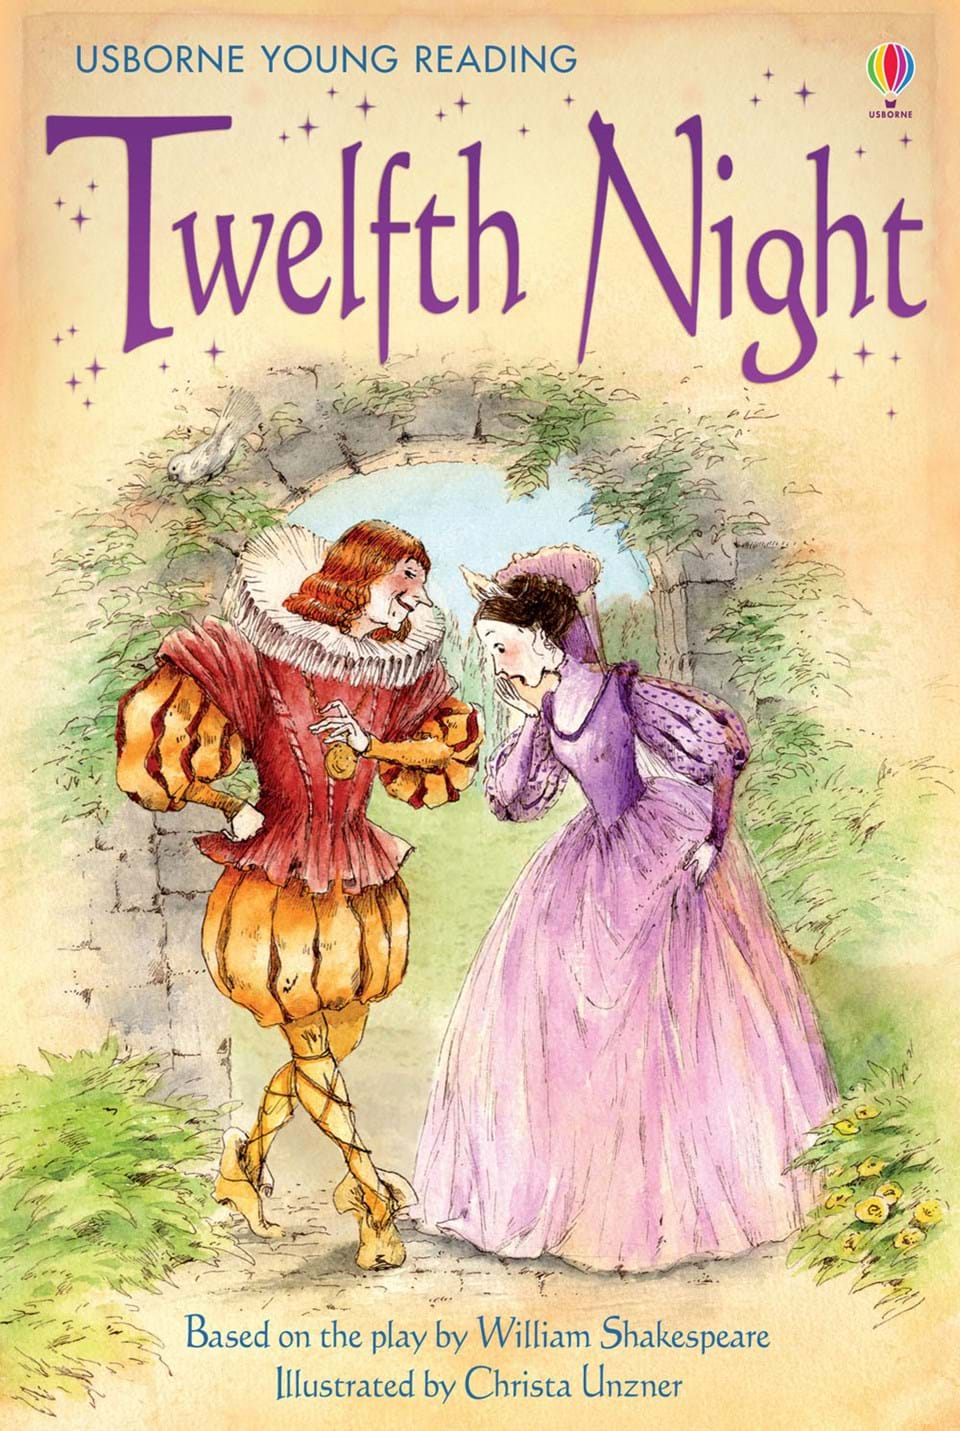 an analysis of shakespeares comedy twelfth night An analysis of the character of feste in william shakespeares comedy twelfth night free study guides and book notes including comprehensive chapter analysis feste significant as a character in twelfth night.